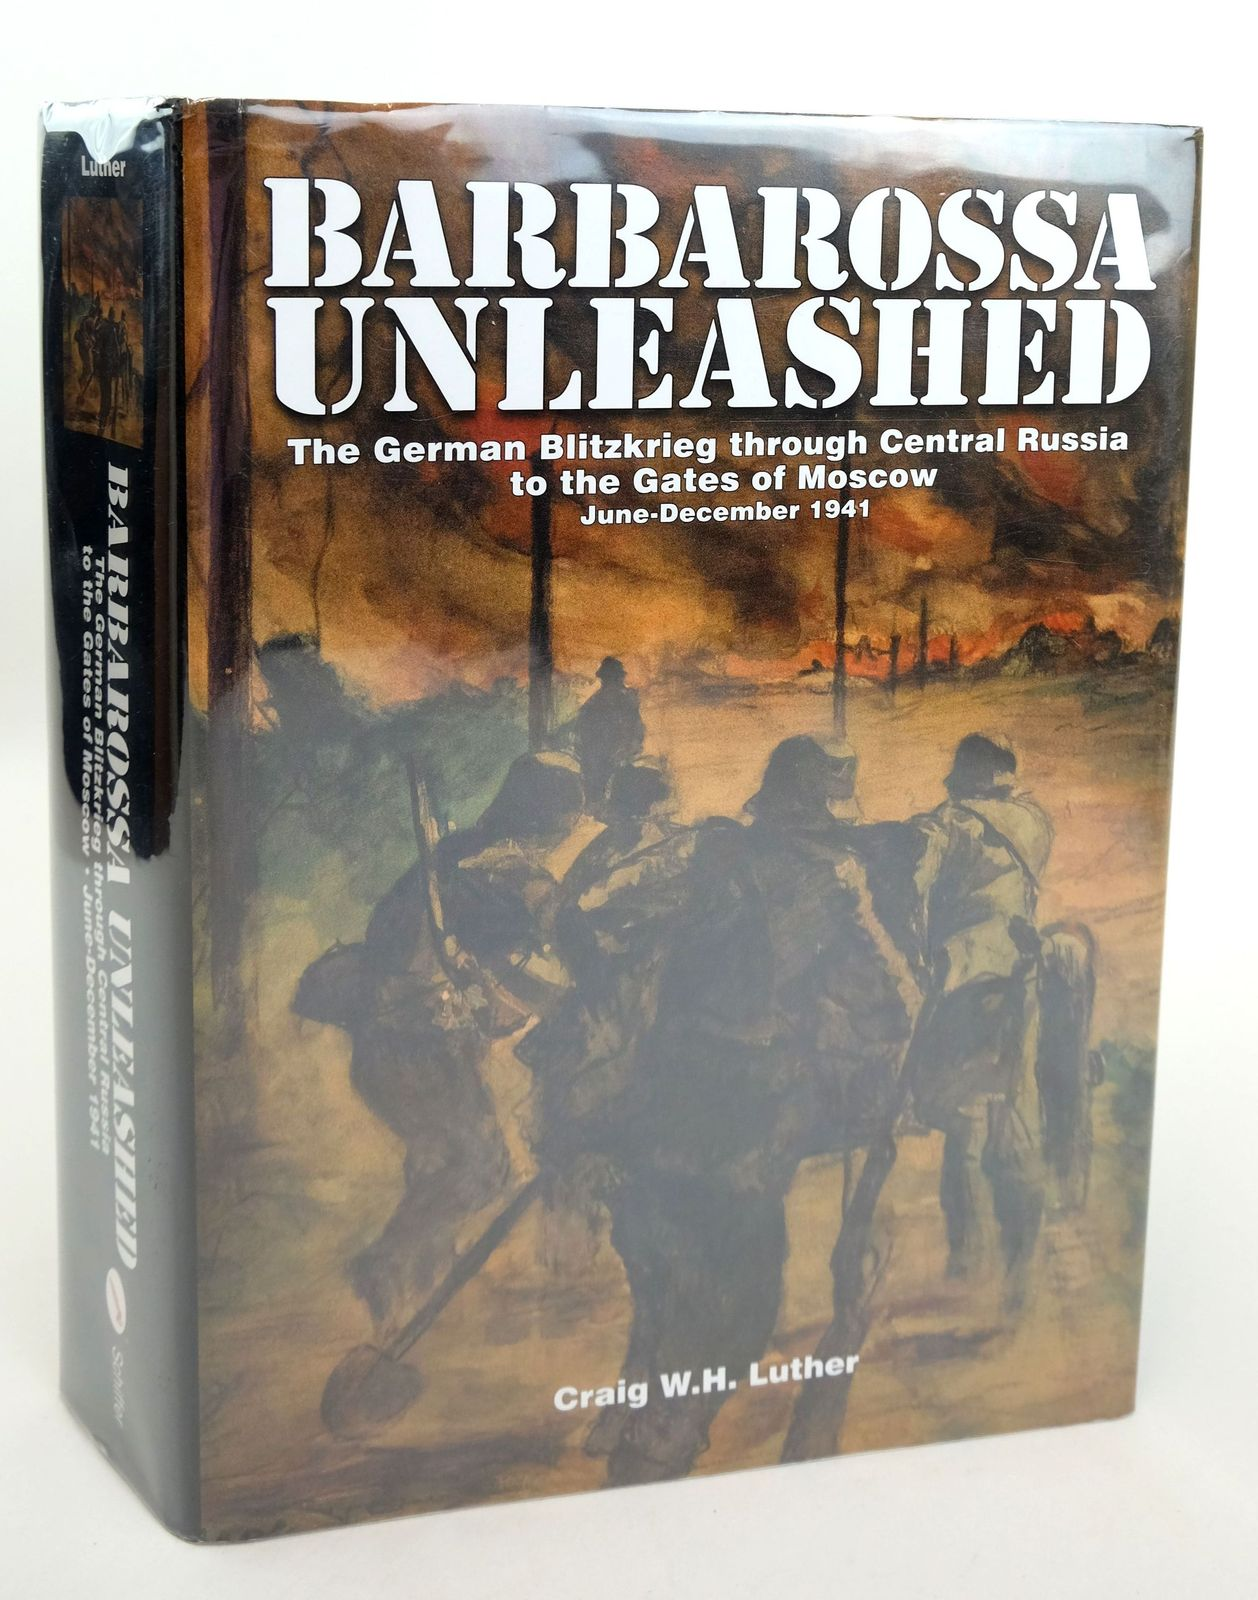 Photo of BARBAROSSA UNLEASHED: THE GERMAN BLITZKRIEG THROUGH CENTRAL RUSSIA TO THE GATES OF MOSCOW written by Luther, Craig W.H. published by Schiffer Publishing Ltd. (STOCK CODE: 1818886)  for sale by Stella & Rose's Books